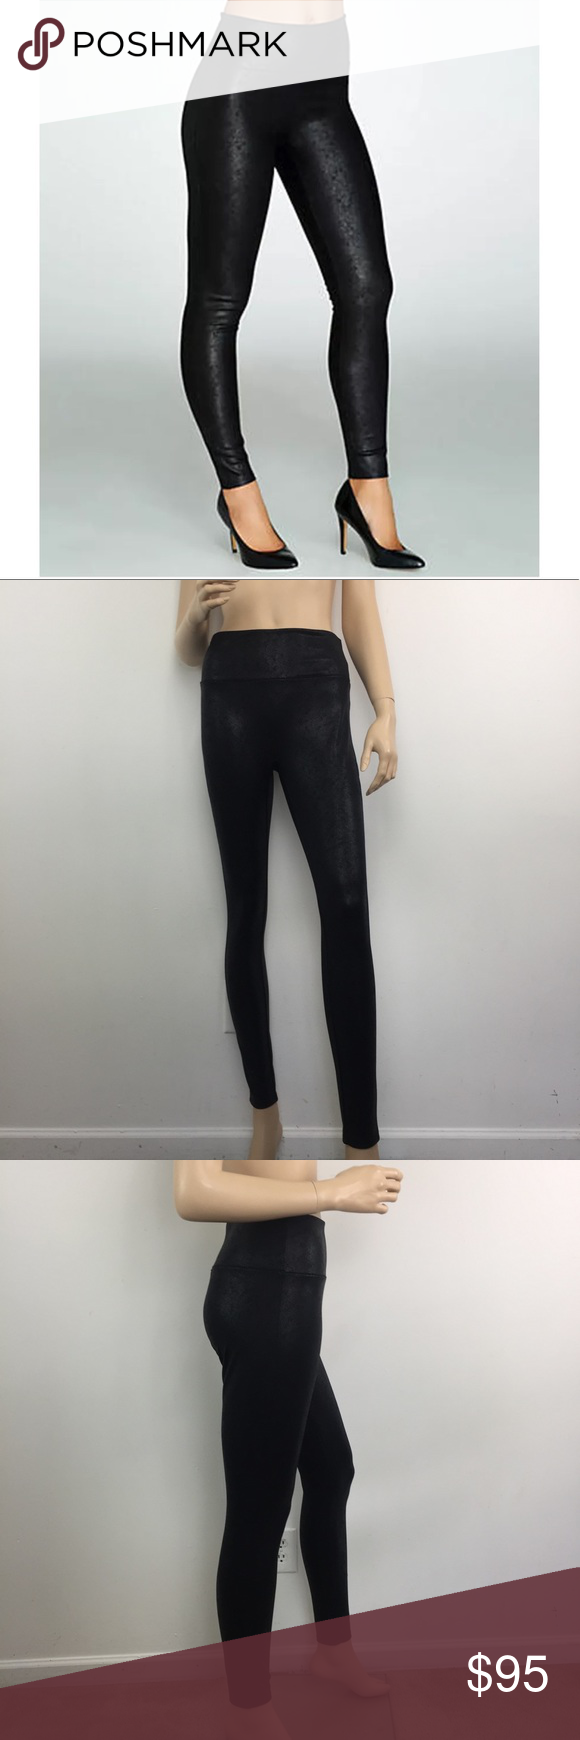 42f79fc3d84d4c Assets by SPANX Black Structured Shine Leggings M These ASSETS Red Hot Label  by Spanx shine leggings offer a structured shaping waistband with inner  power ...